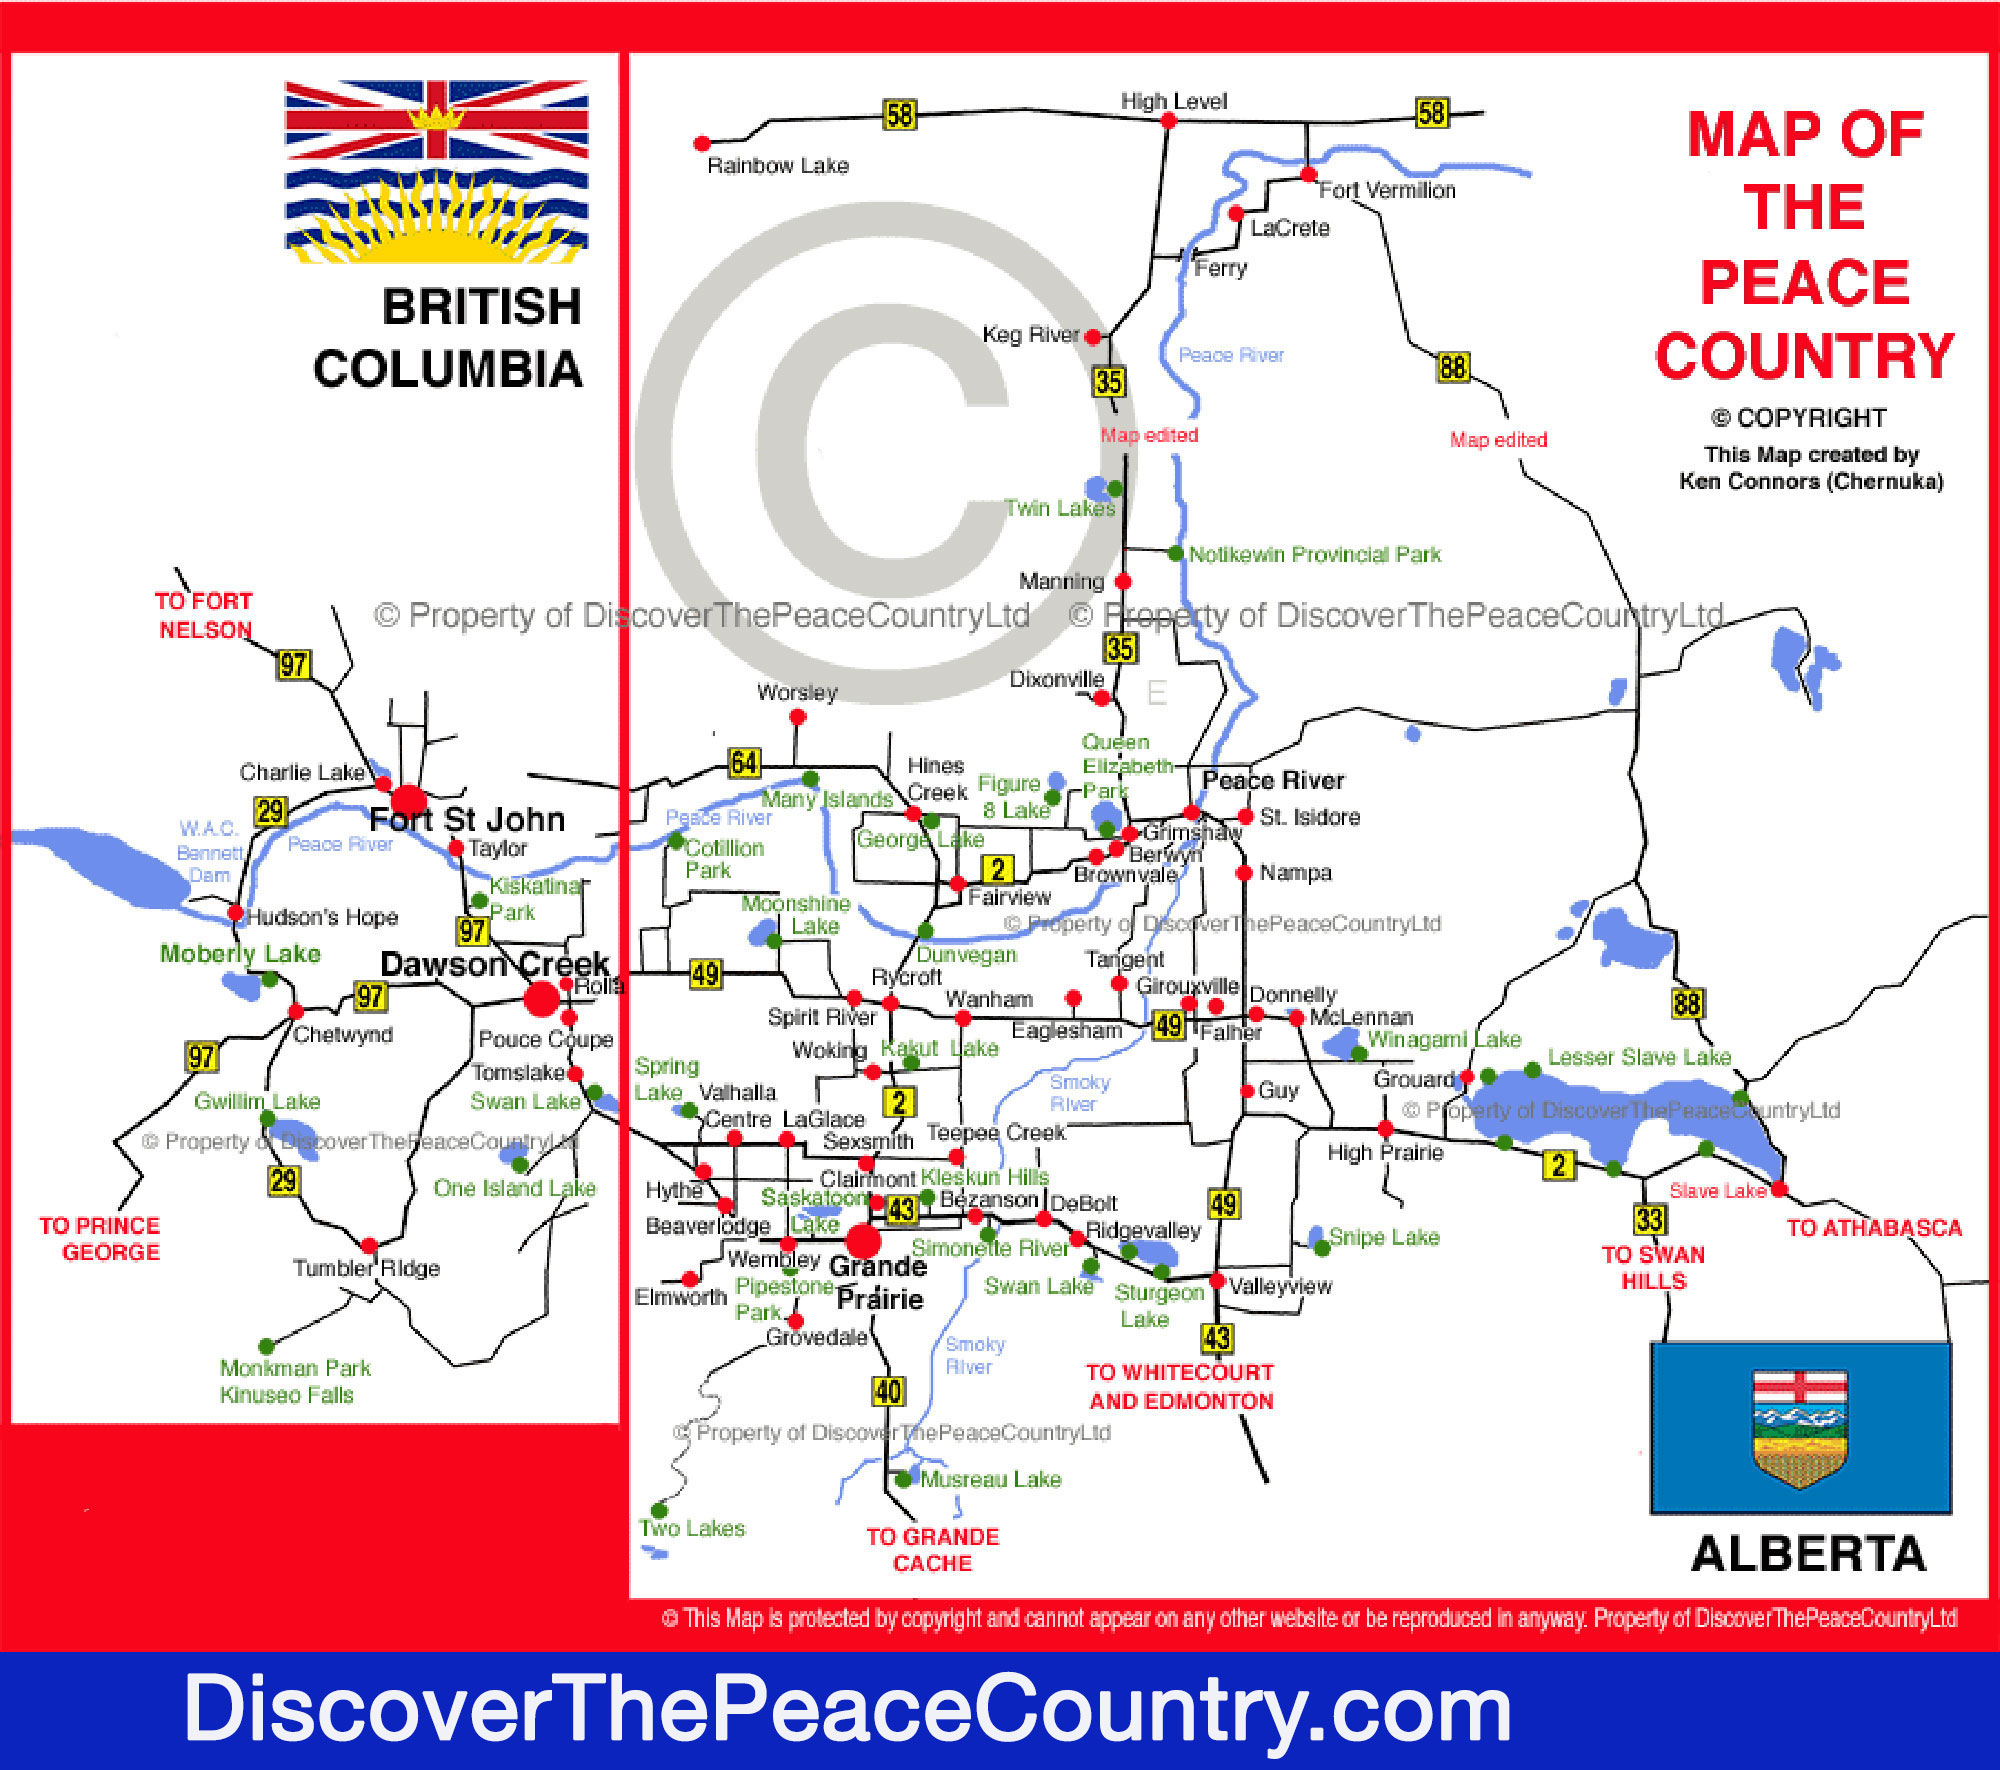 Map of the Peace Country - Northern Alberta & British ... Map Hope Bc on hope ny map, hope nj map, hope michigan map, hope facebook, pitt meadows, point hope alaska map, hope az map, hope nd map, hope maine map, hope montana map, hope fishing, maple ridge, golden ears provincial park, new hope pa map, british columbia map, hope ak map, white rock, terry fox marathon of hope map, hope idaho map, hope canada map, hope ar map, hope florida map, dawson creek, port hope map, hope worcester,